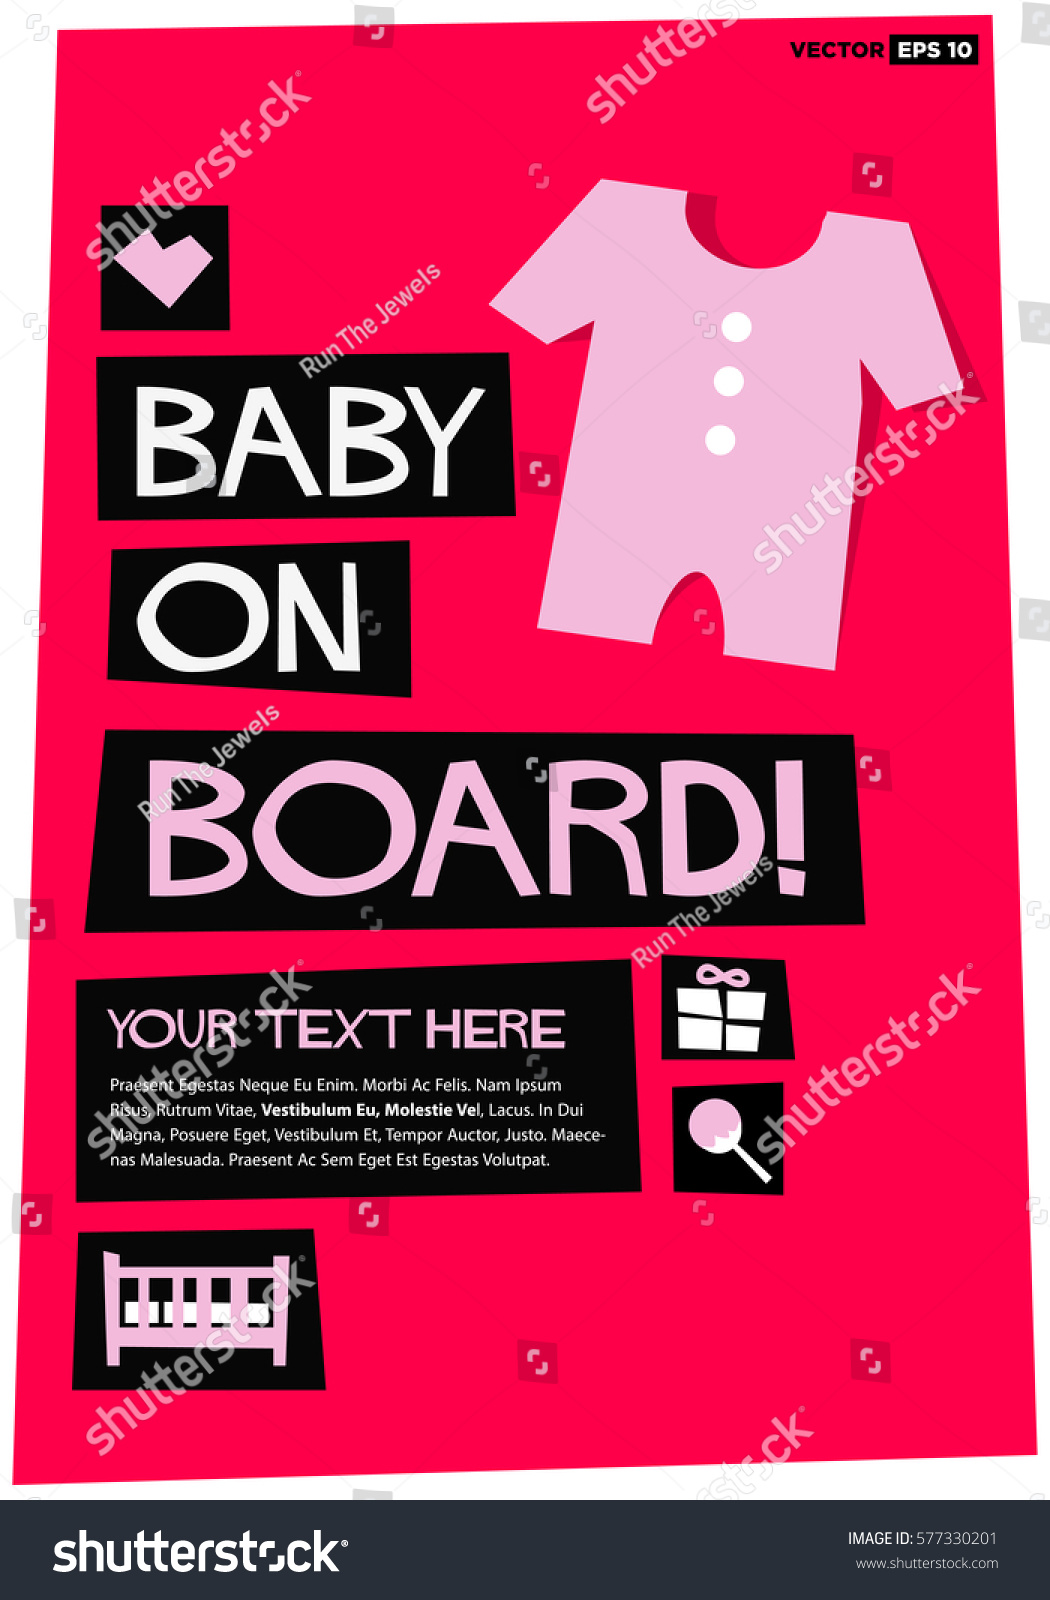 A board poster design - Baby On Board Flat Style Vector Illustration Poster Design With Text Box Template